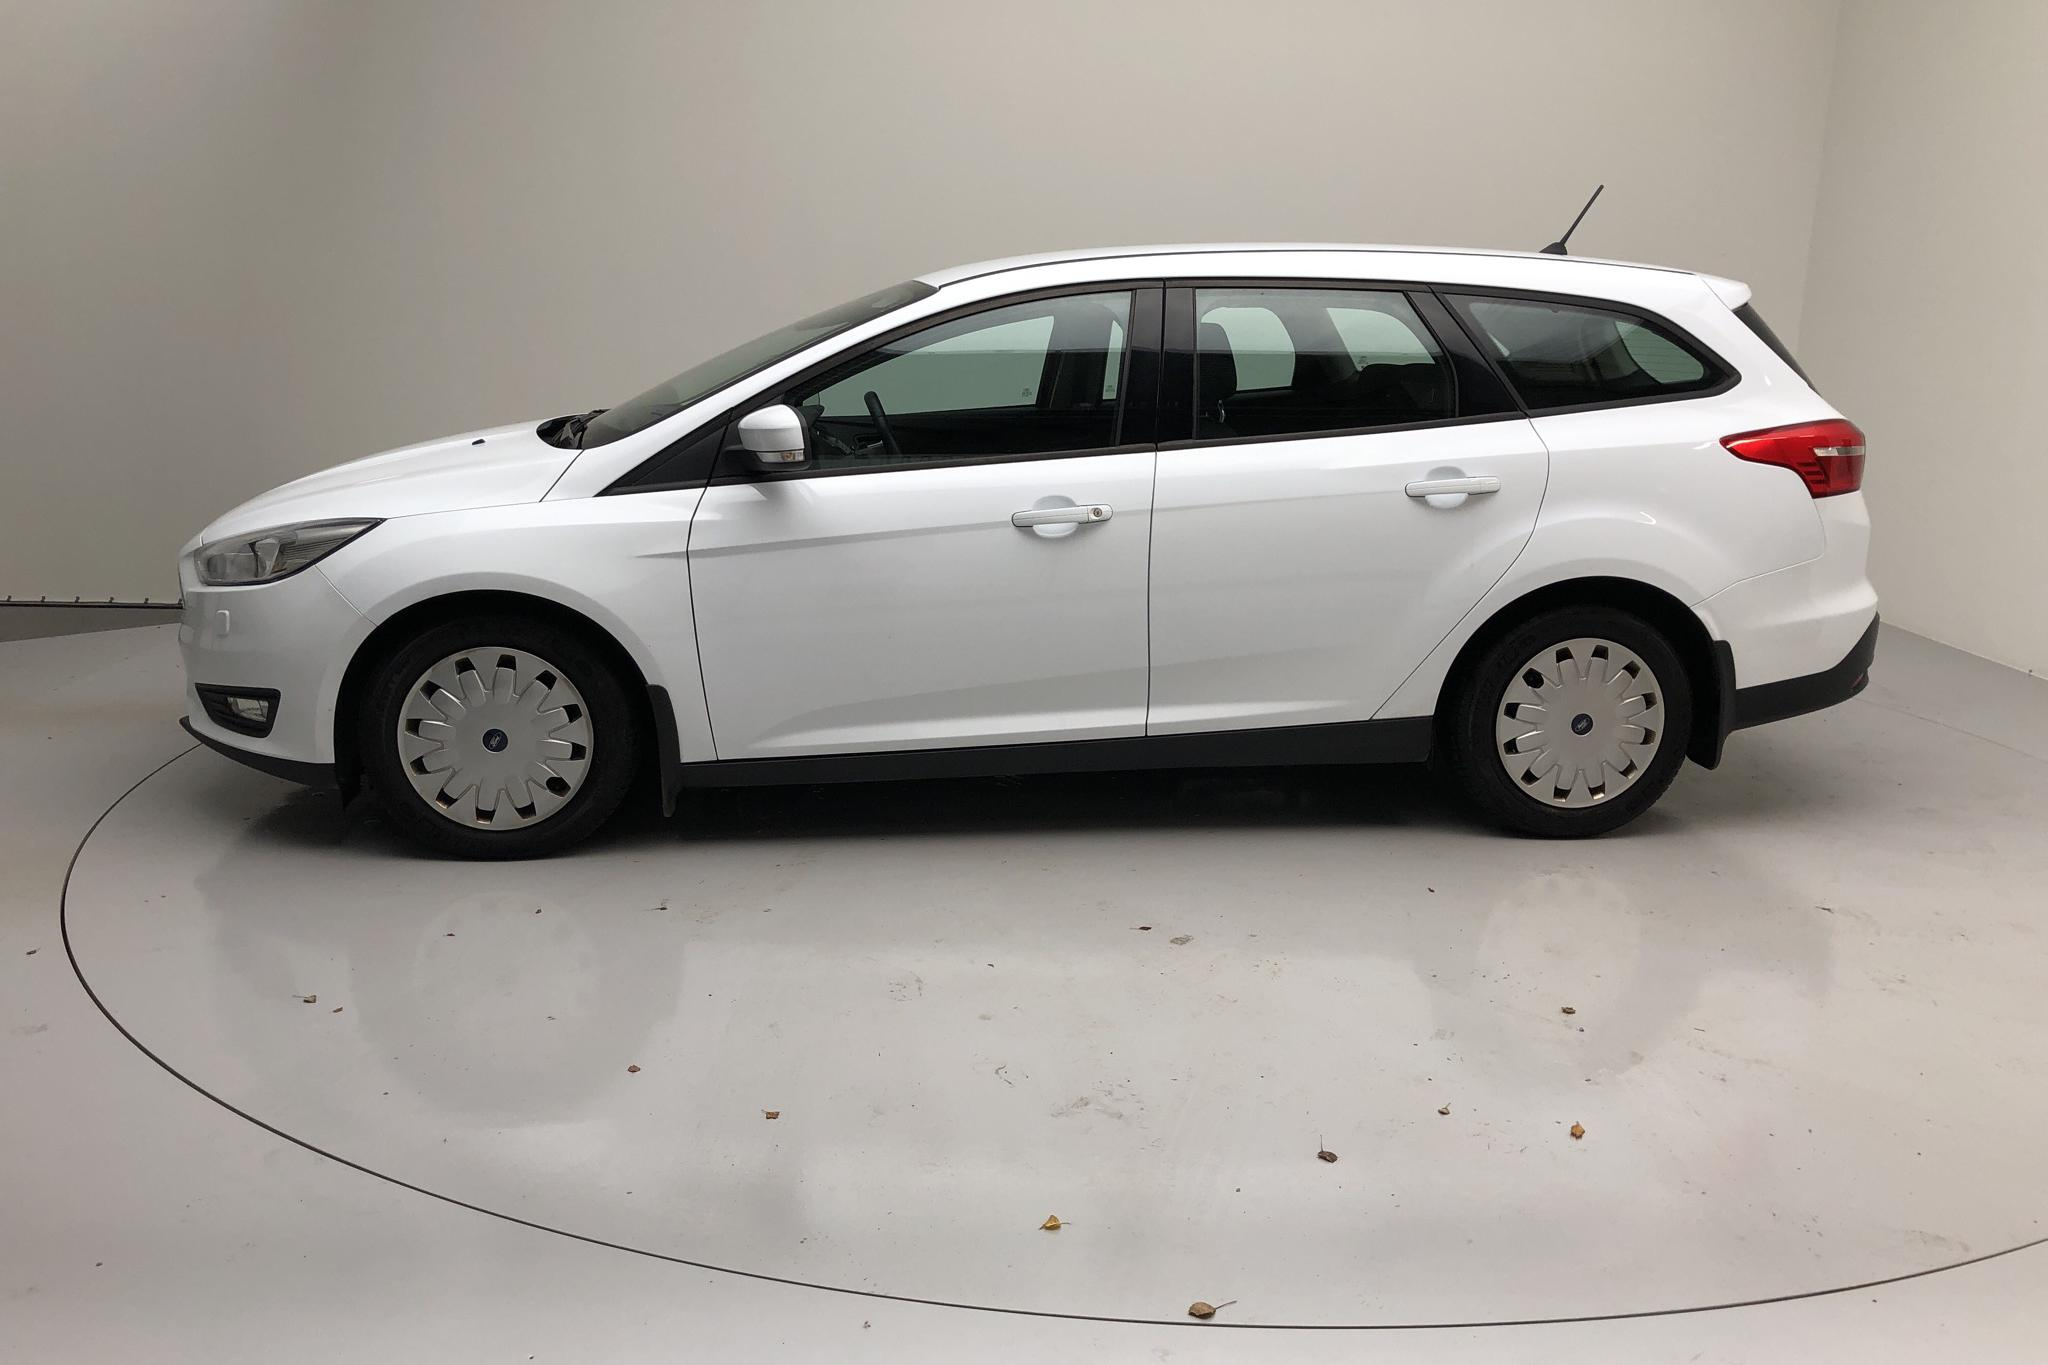 Ford Focus 1.5 TDCi ECOnetic Kombi (105hk) - 79 650 km - Manual - white - 2017